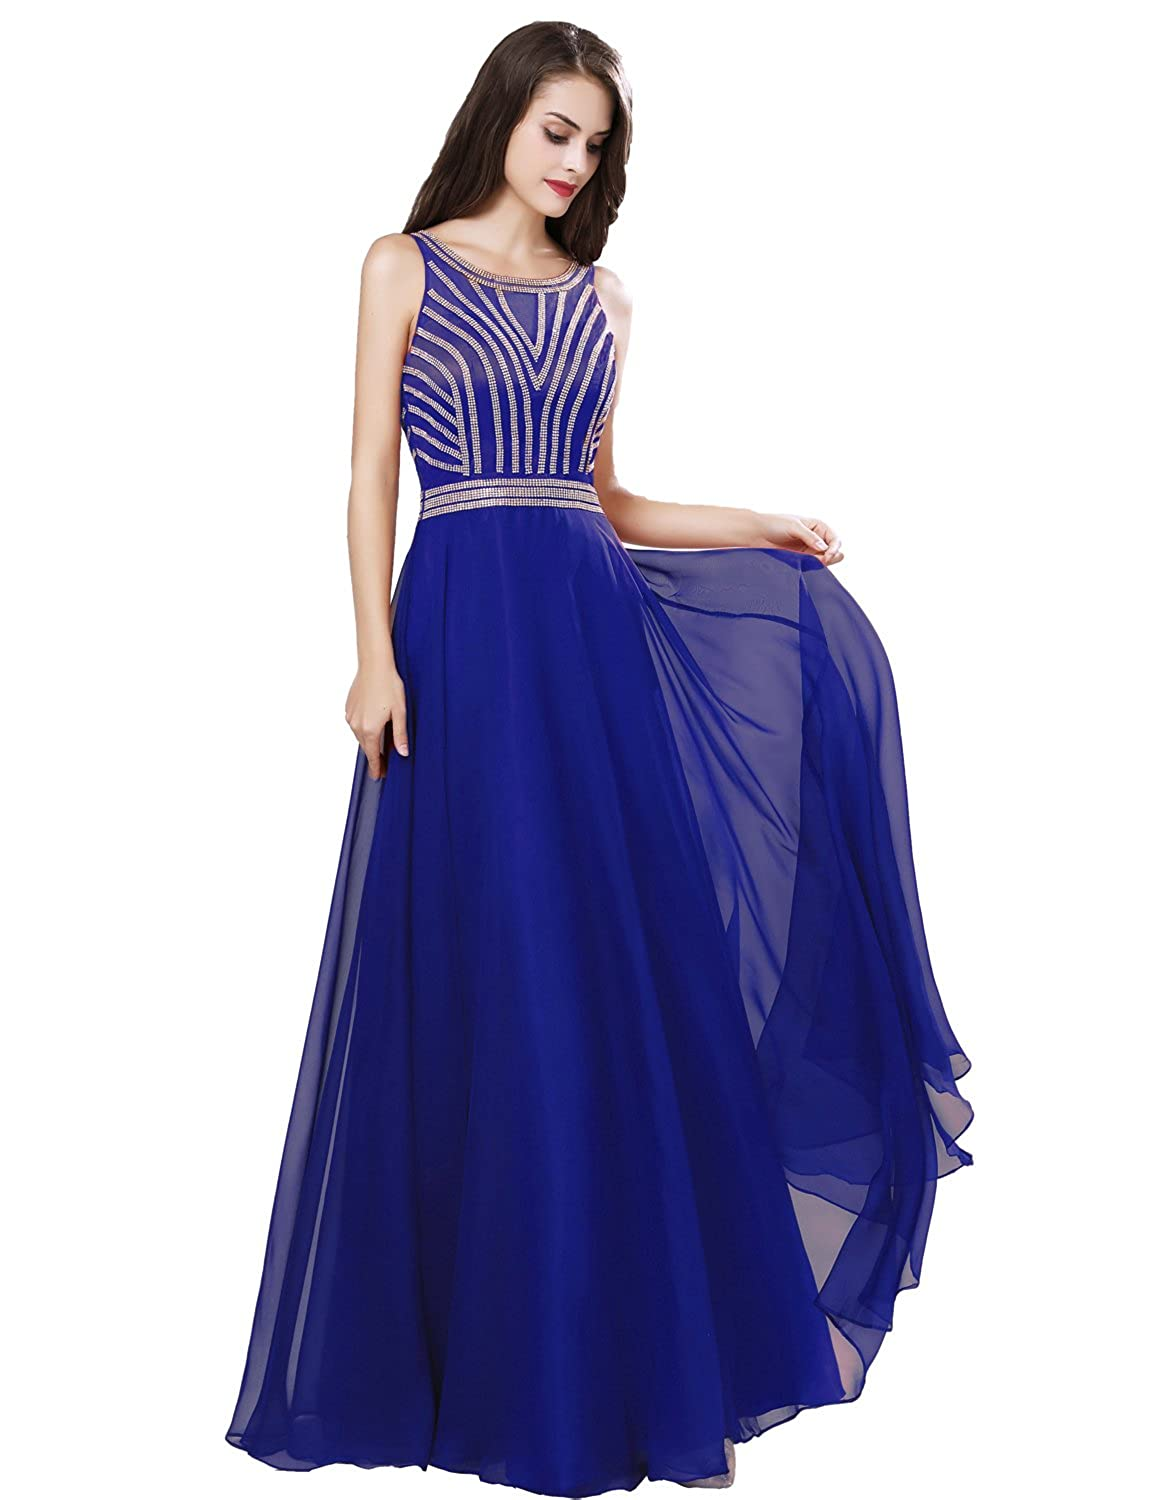 411royal bluee Sarahbridal Womens Lace Prom Dresses Formal Evening Gown with Half Sleeve SD328